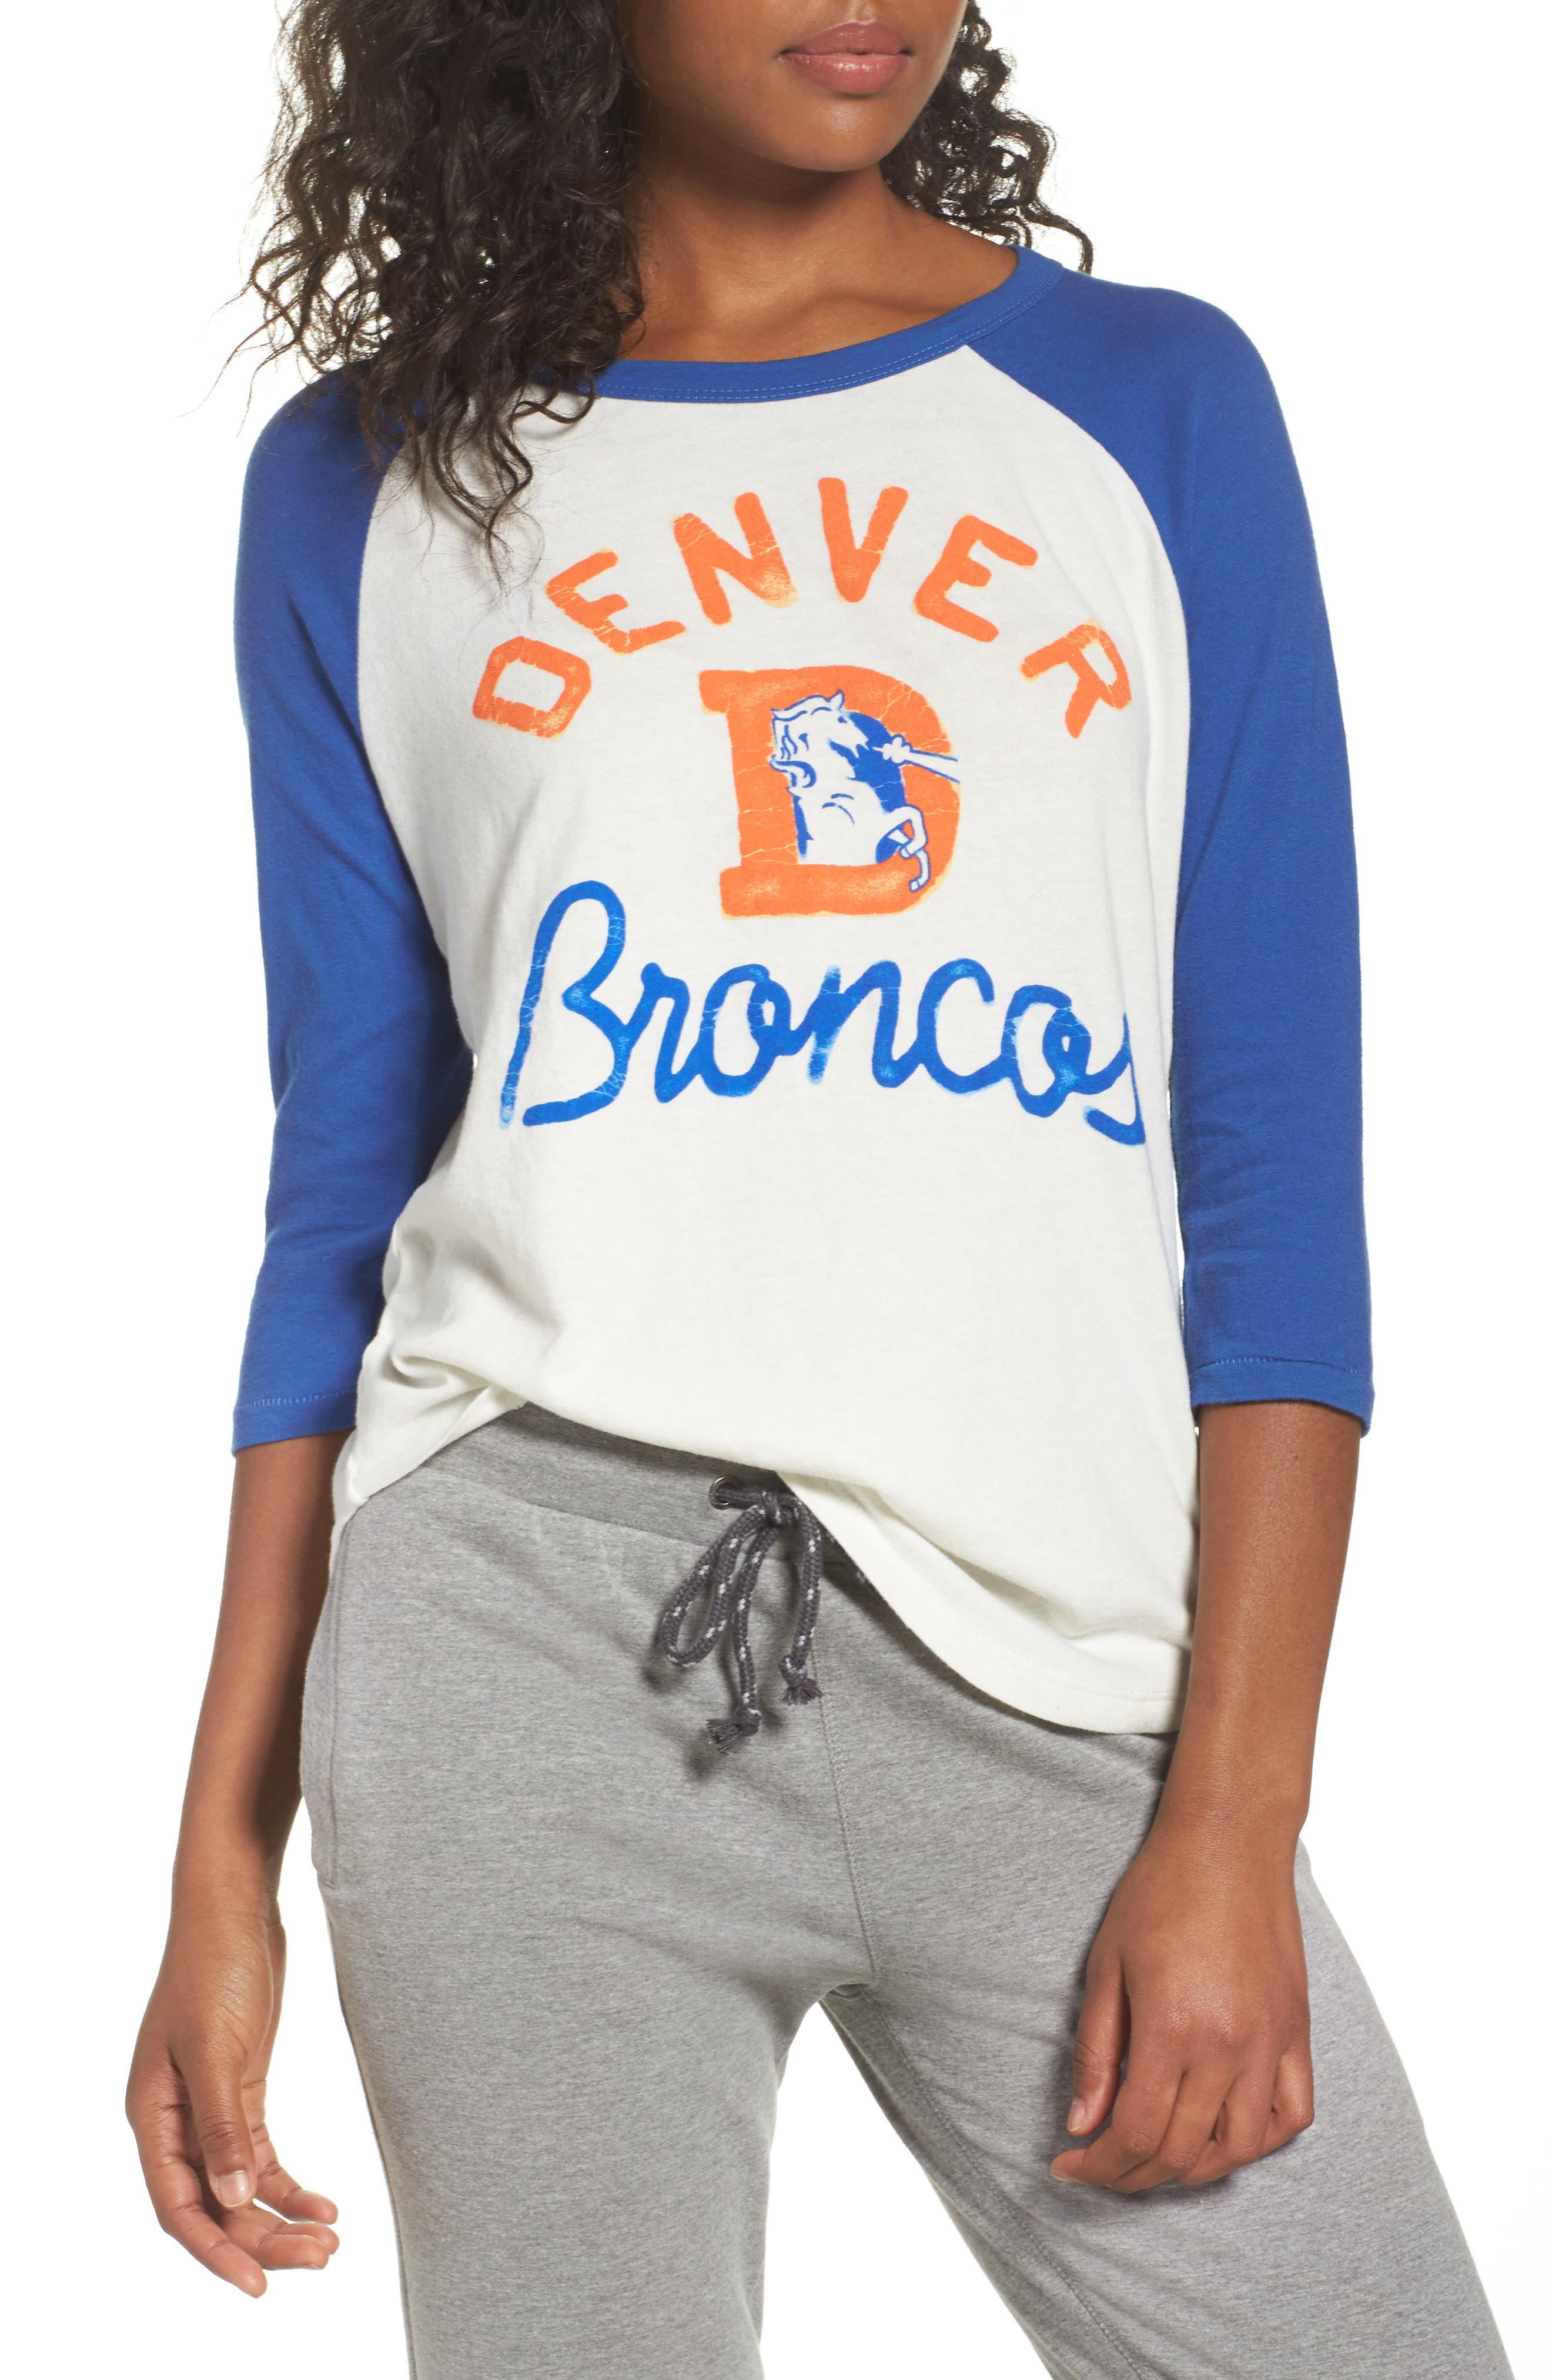 NFL Denver Broncos Raglan Tee,                             Main thumbnail 1, color,                             189